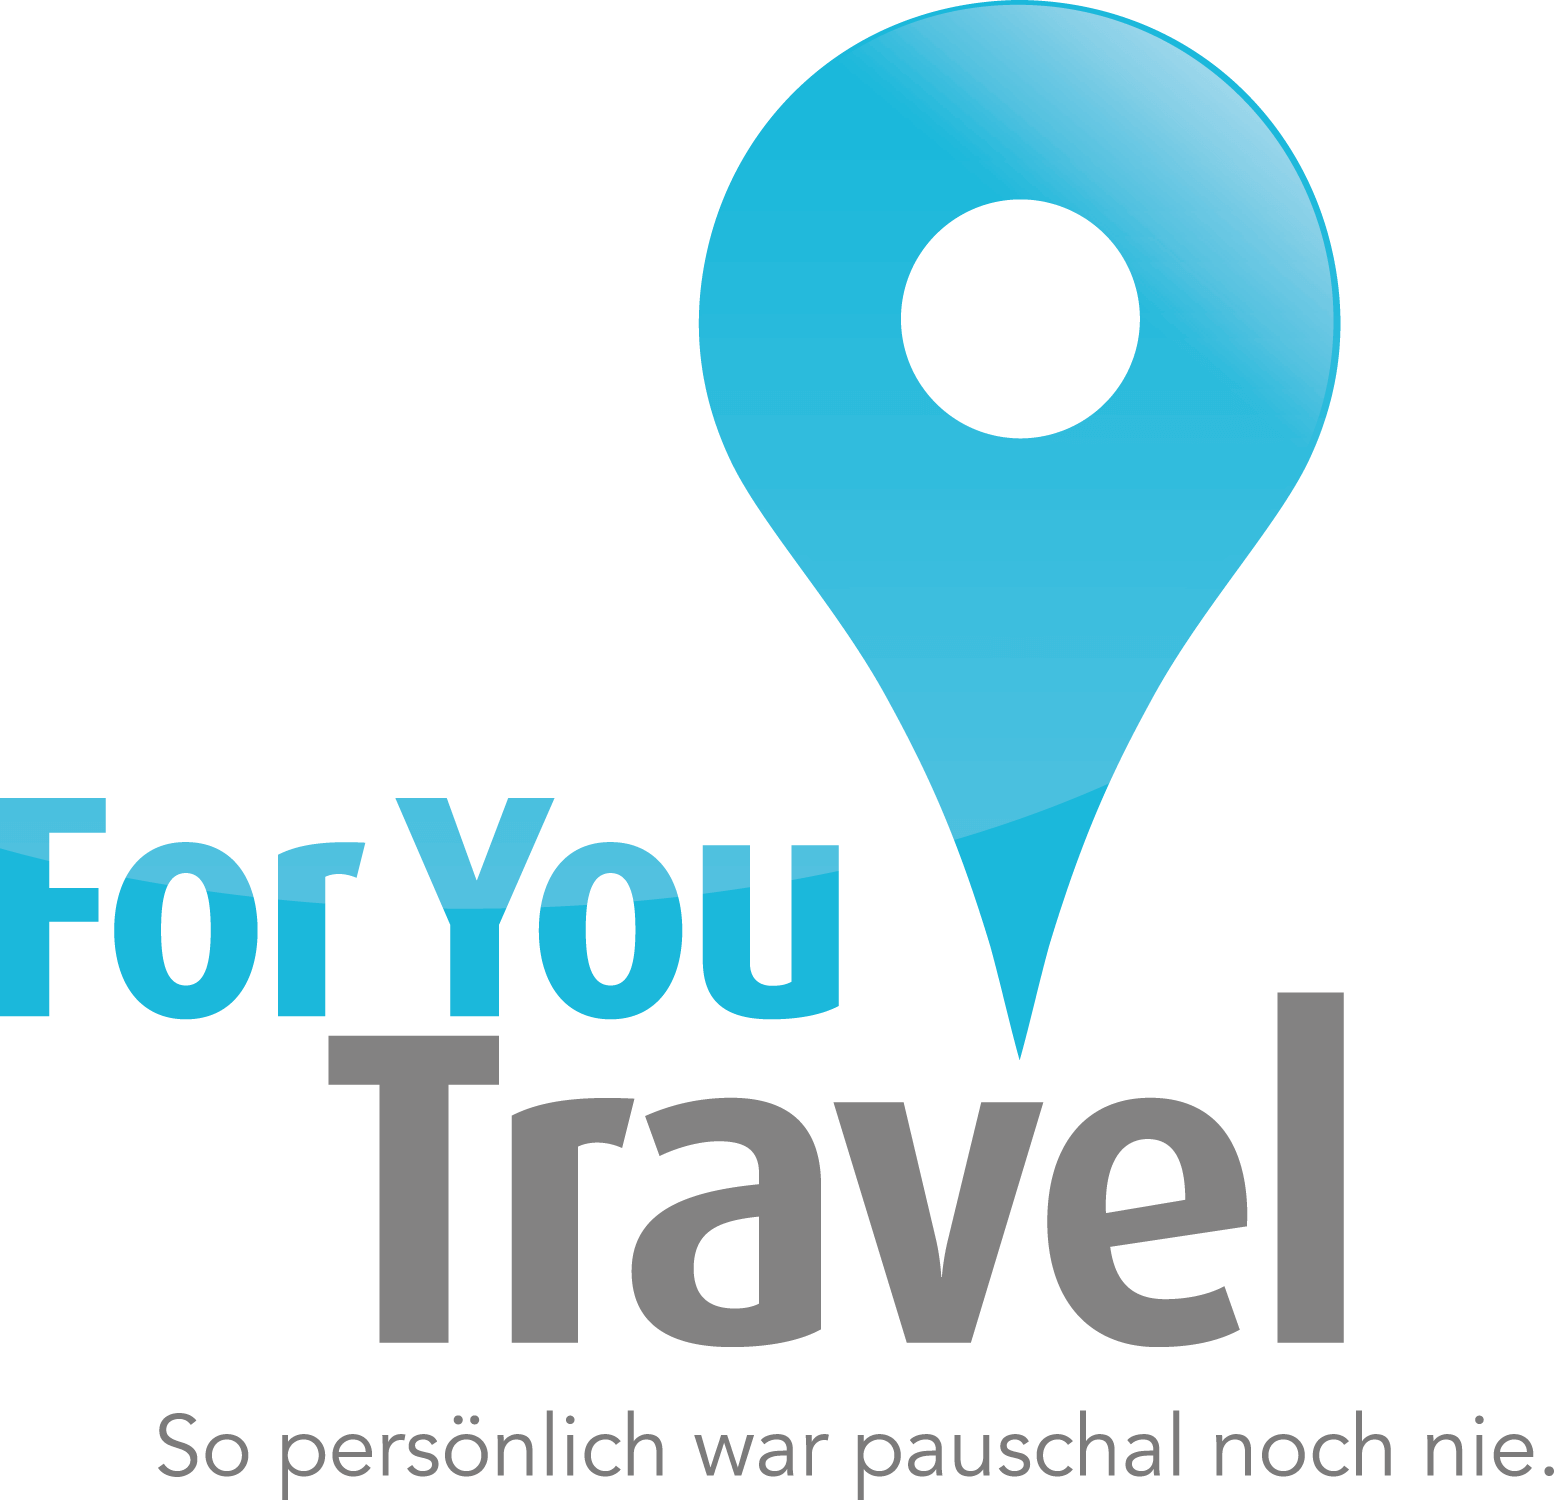 For You Travel - Pauschal Reisen und Hotel Buchungen Experte